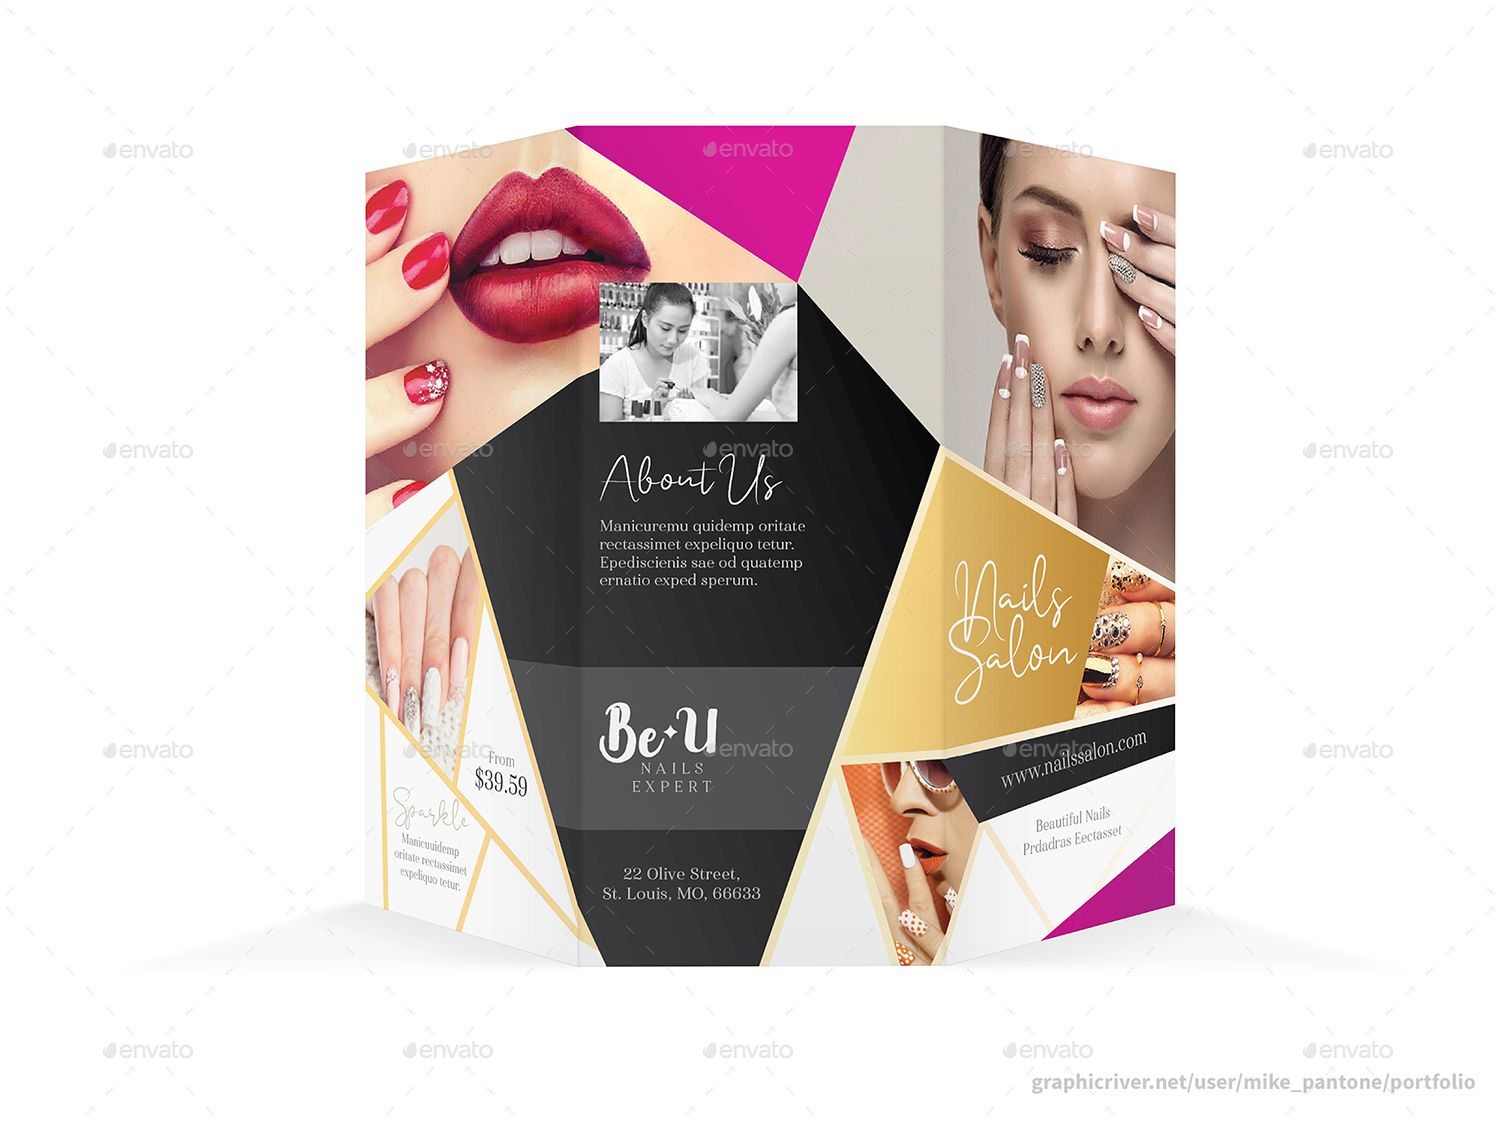 Nails Salon Trifold Brochure 2 Trifold brochure, Nail